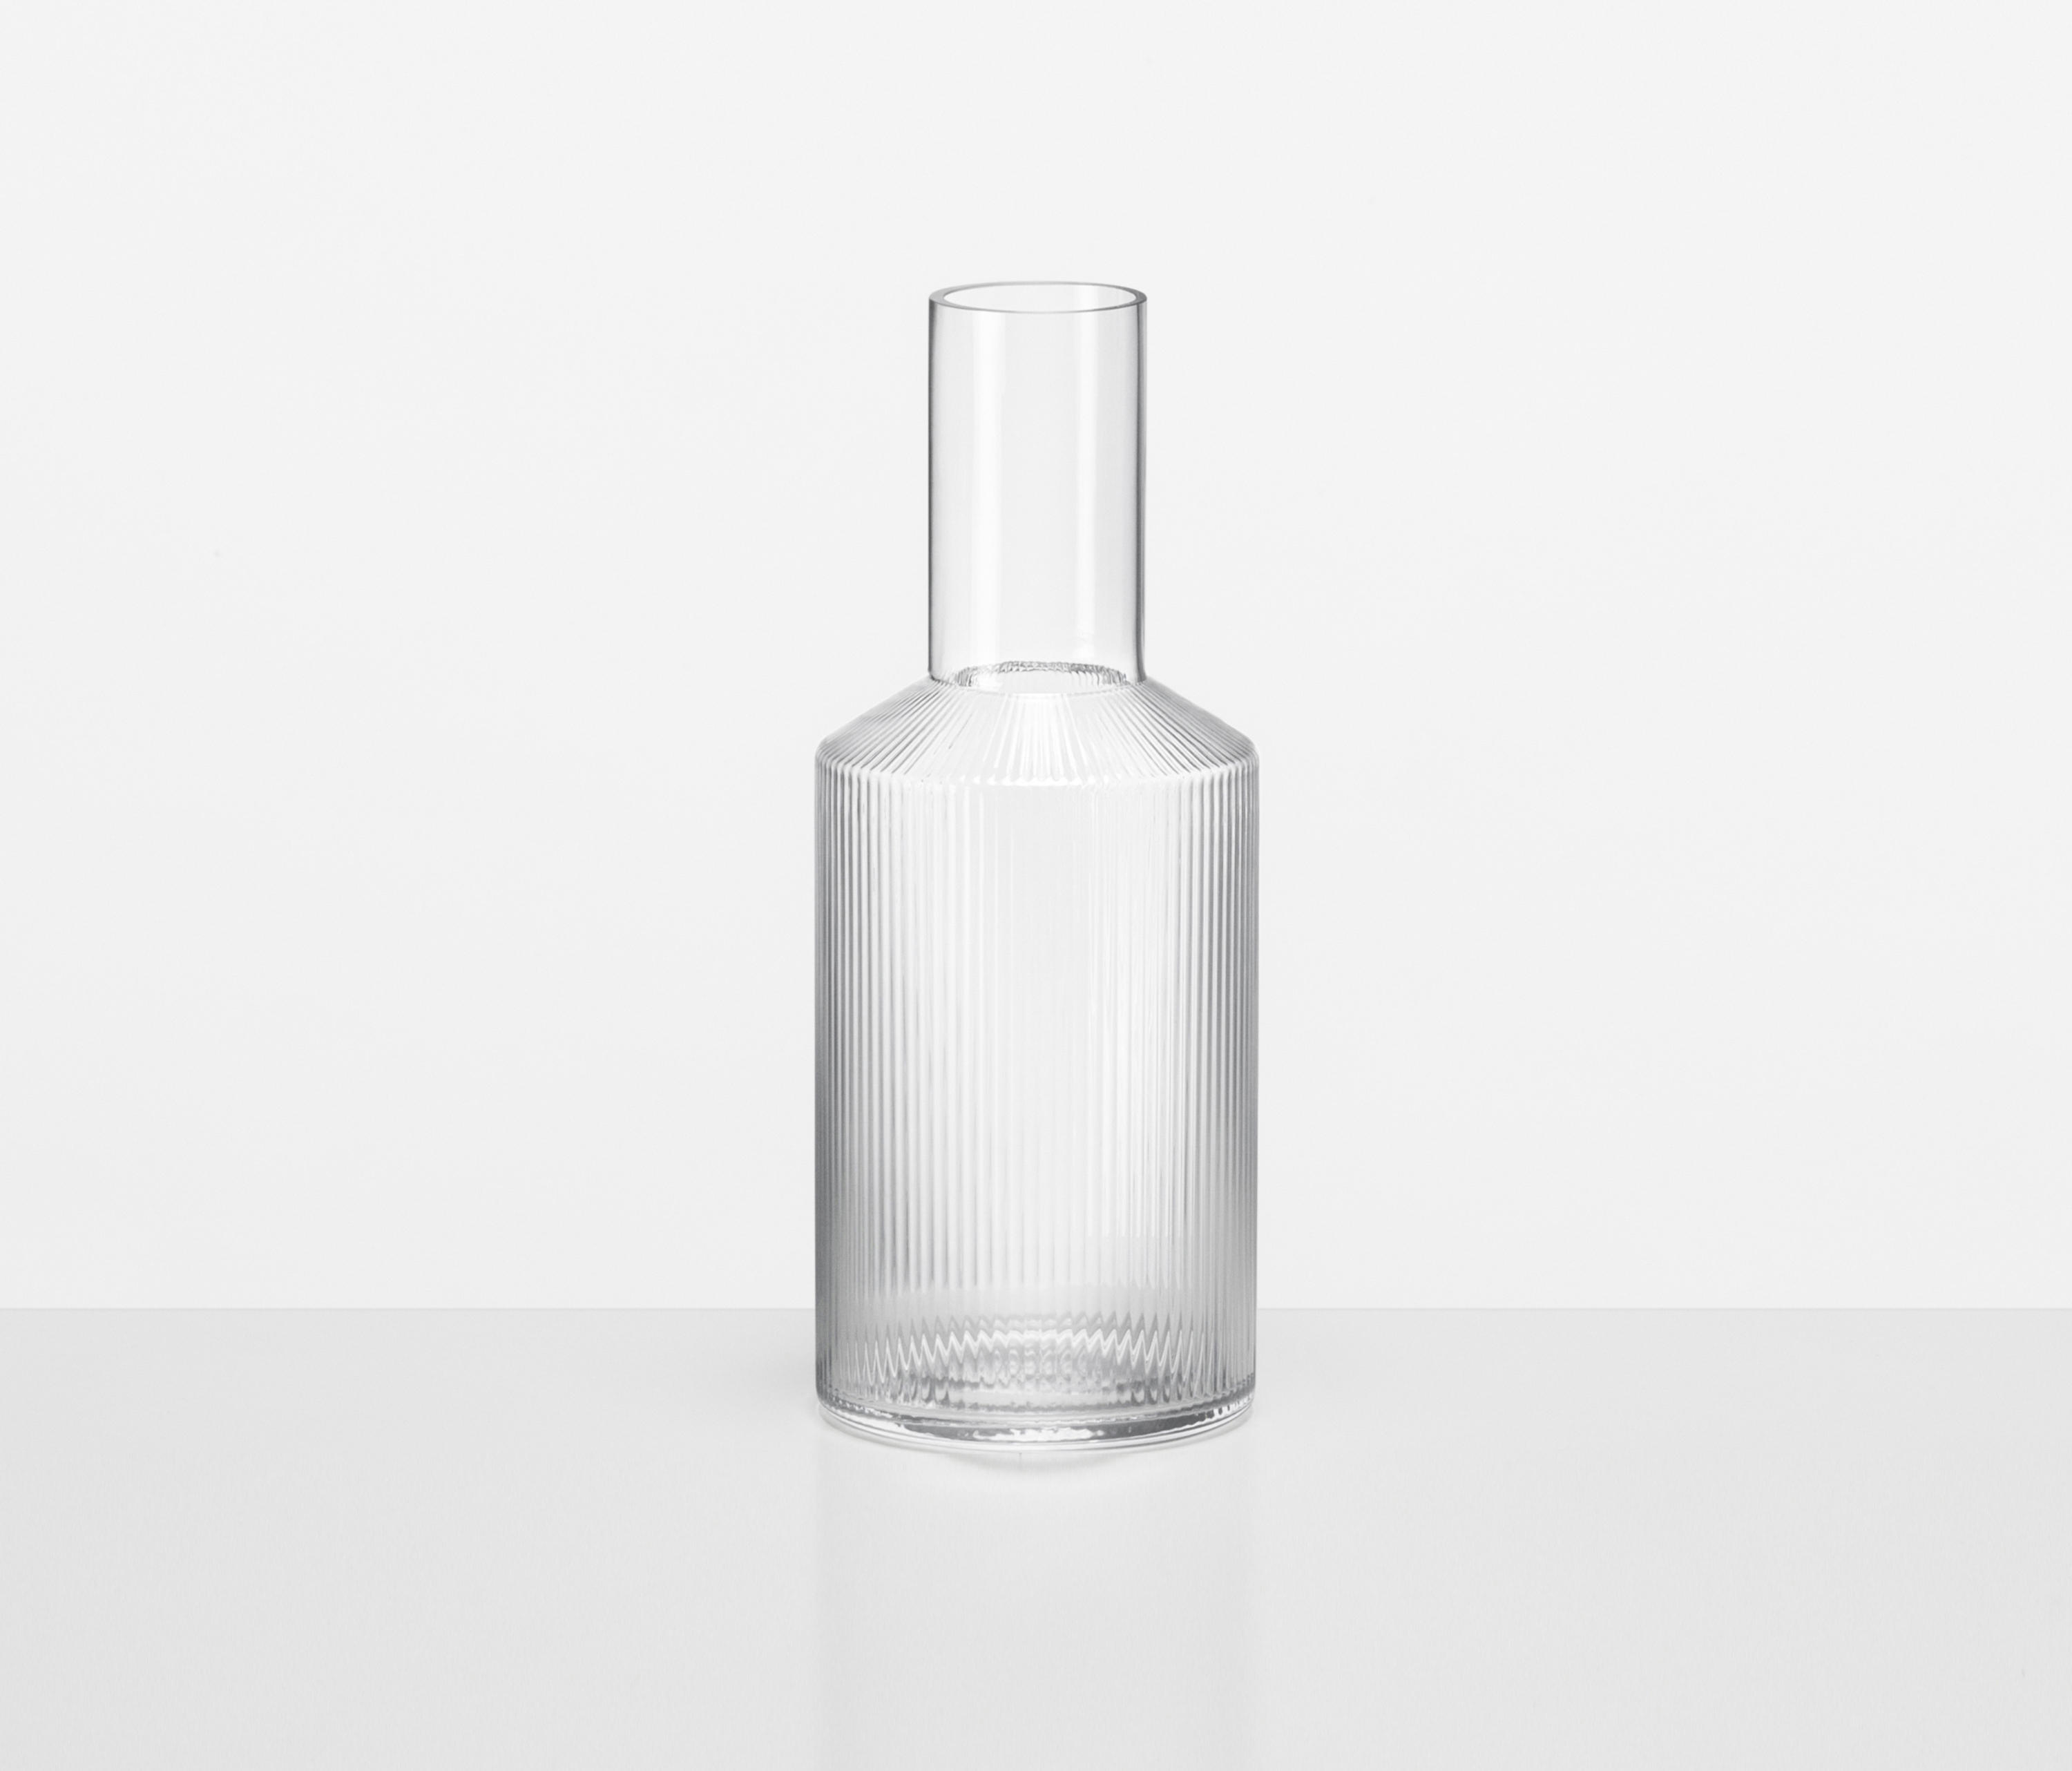 A Carafe That Is A Blind Glass ripple carafe - high quality designer products  architonic